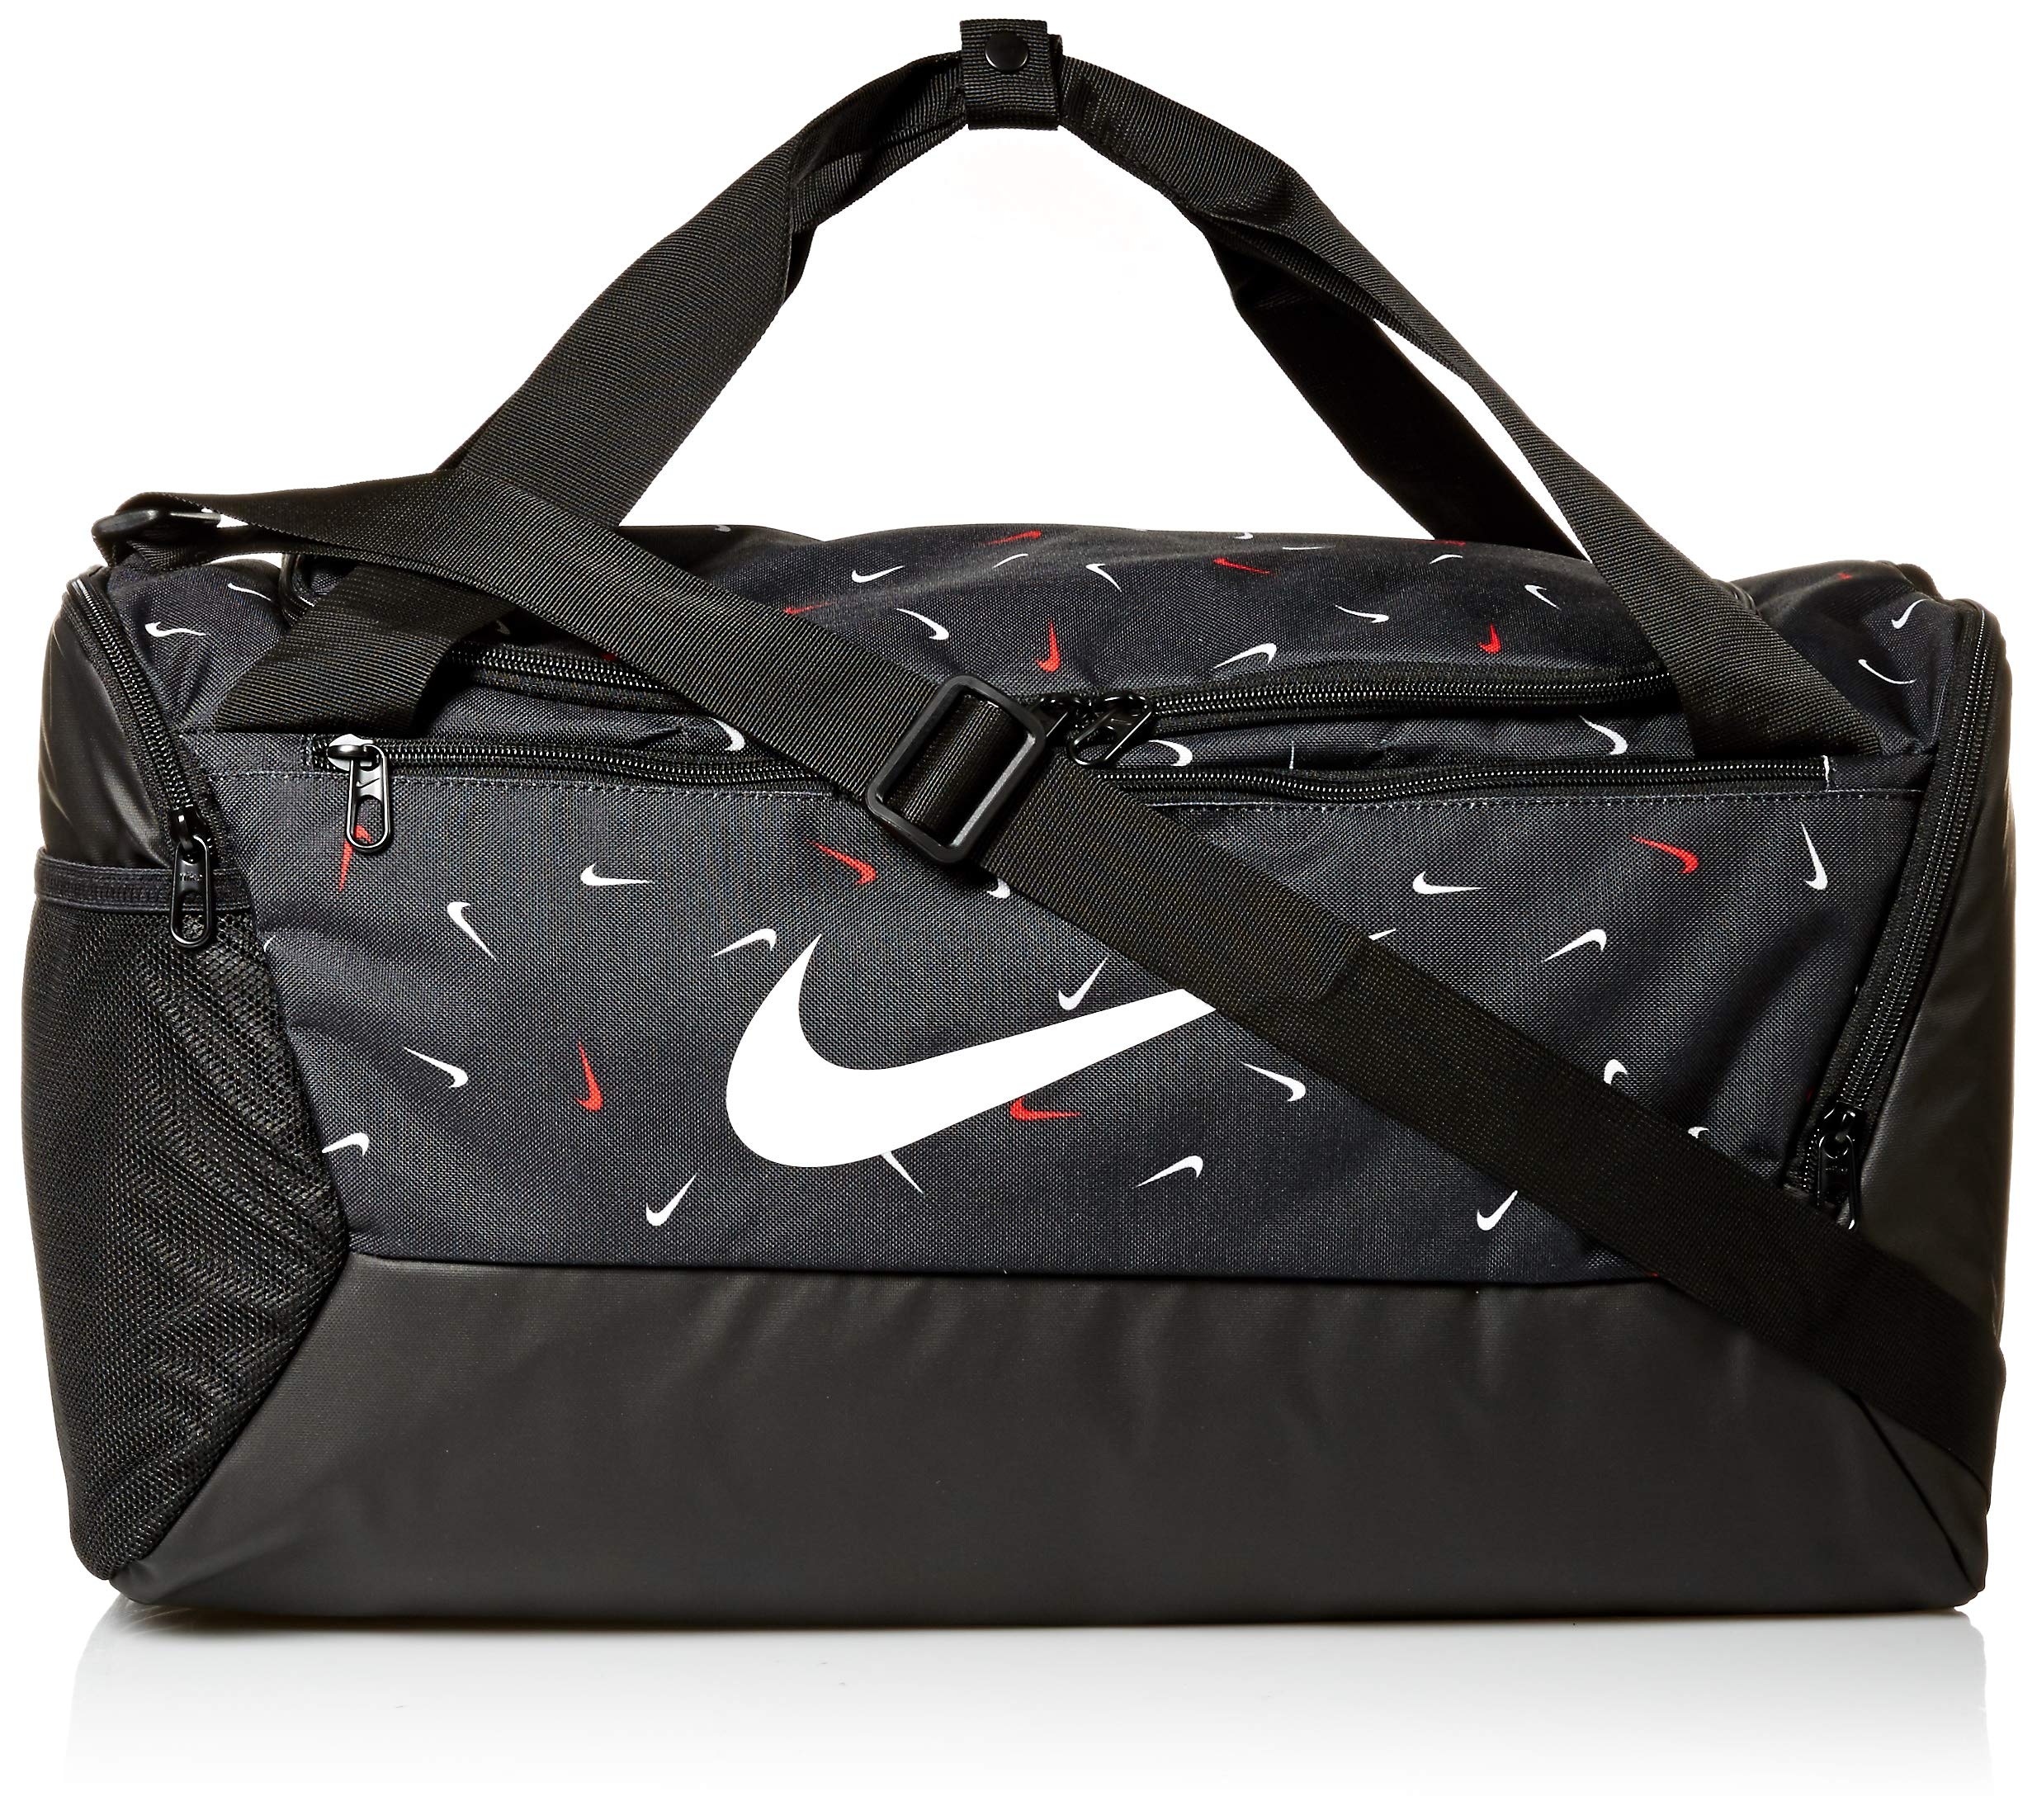 cuatro veces Hobart Para un día de viaje  NIKE Brasilia Small Duffel - 9.0 All Over Print 2, Black/Black/White, Misc:  Amazon.com.au: Sports, Fitness & Outdoors